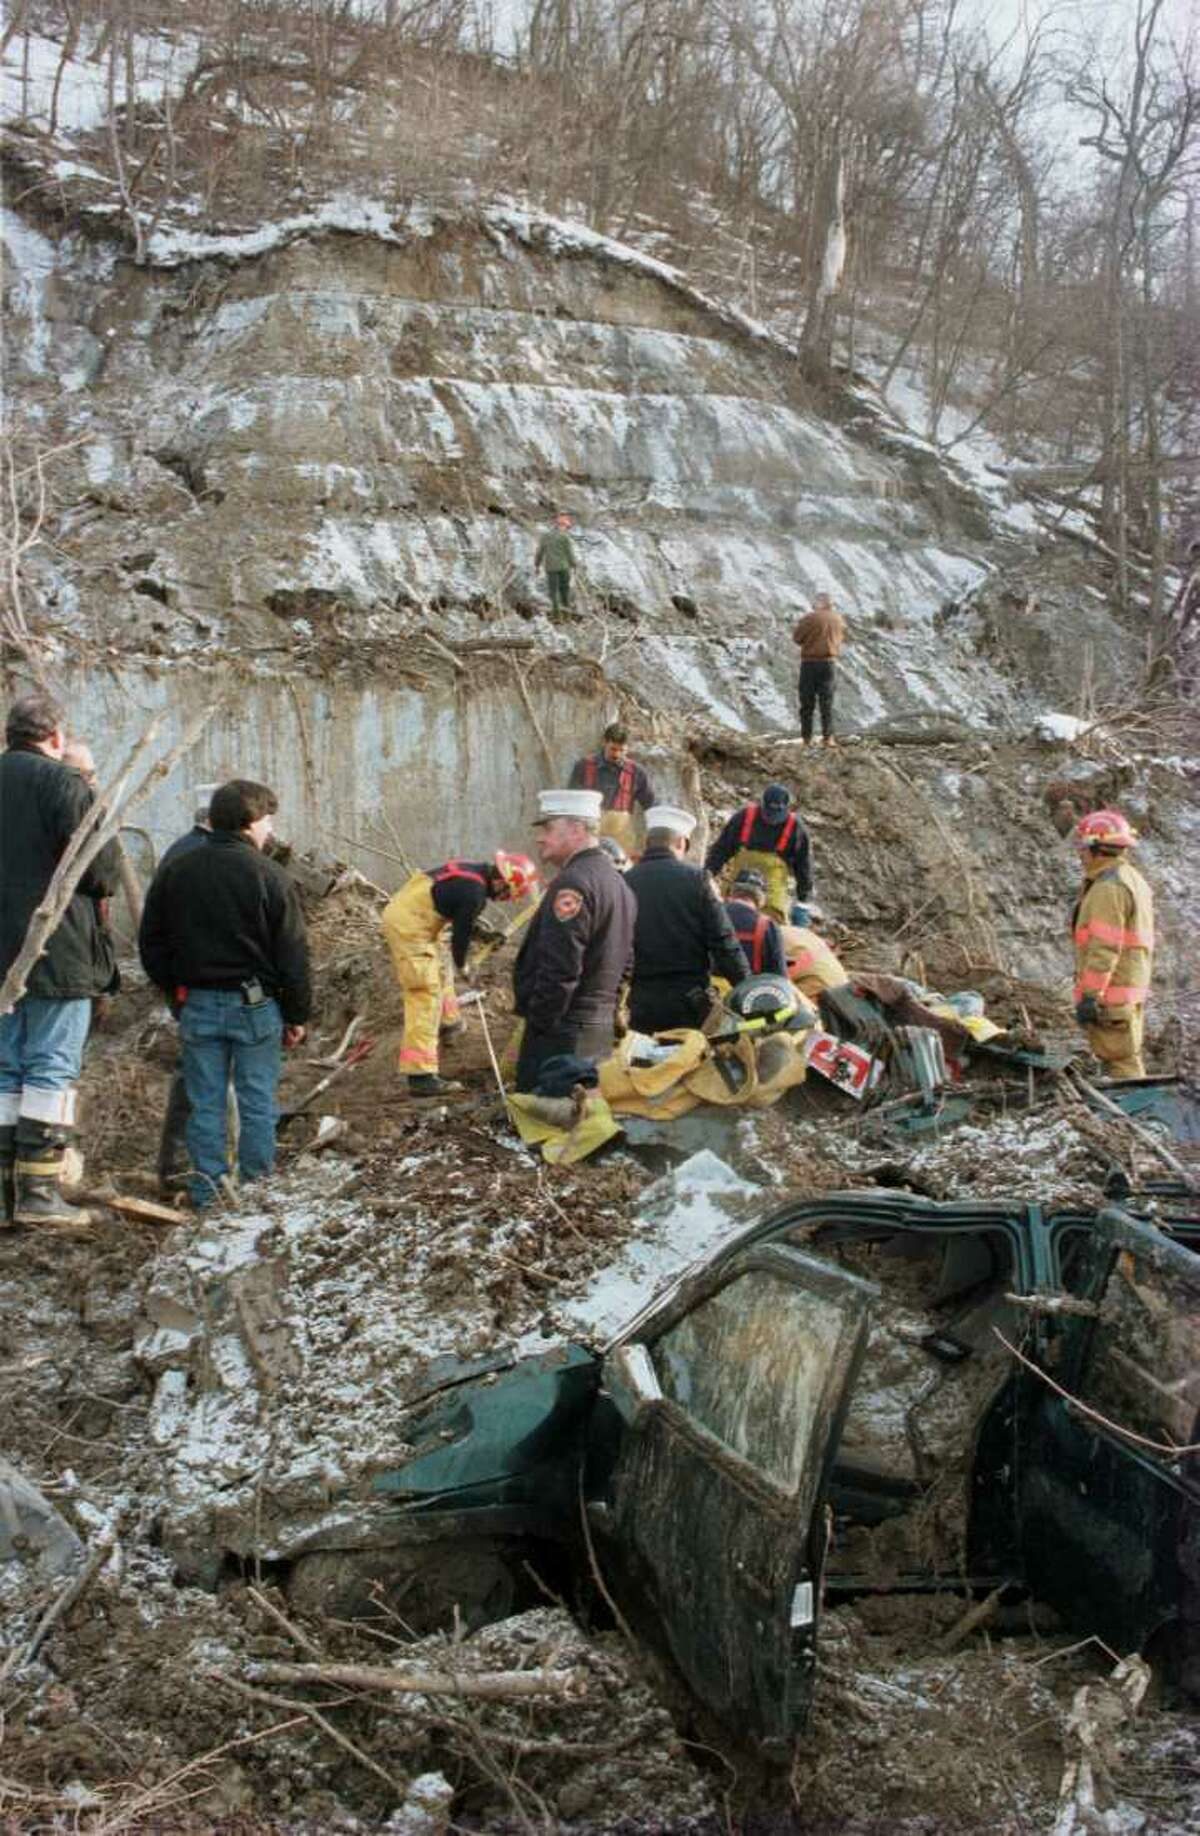 Schenectady firefighters and rescue personnel dig for further evidence and possible victims at the scene of Broadway mudslide on Monday Jan. 22, 1996, in Schenectady, N.Y. (Jack Madigan/Times Union archive)